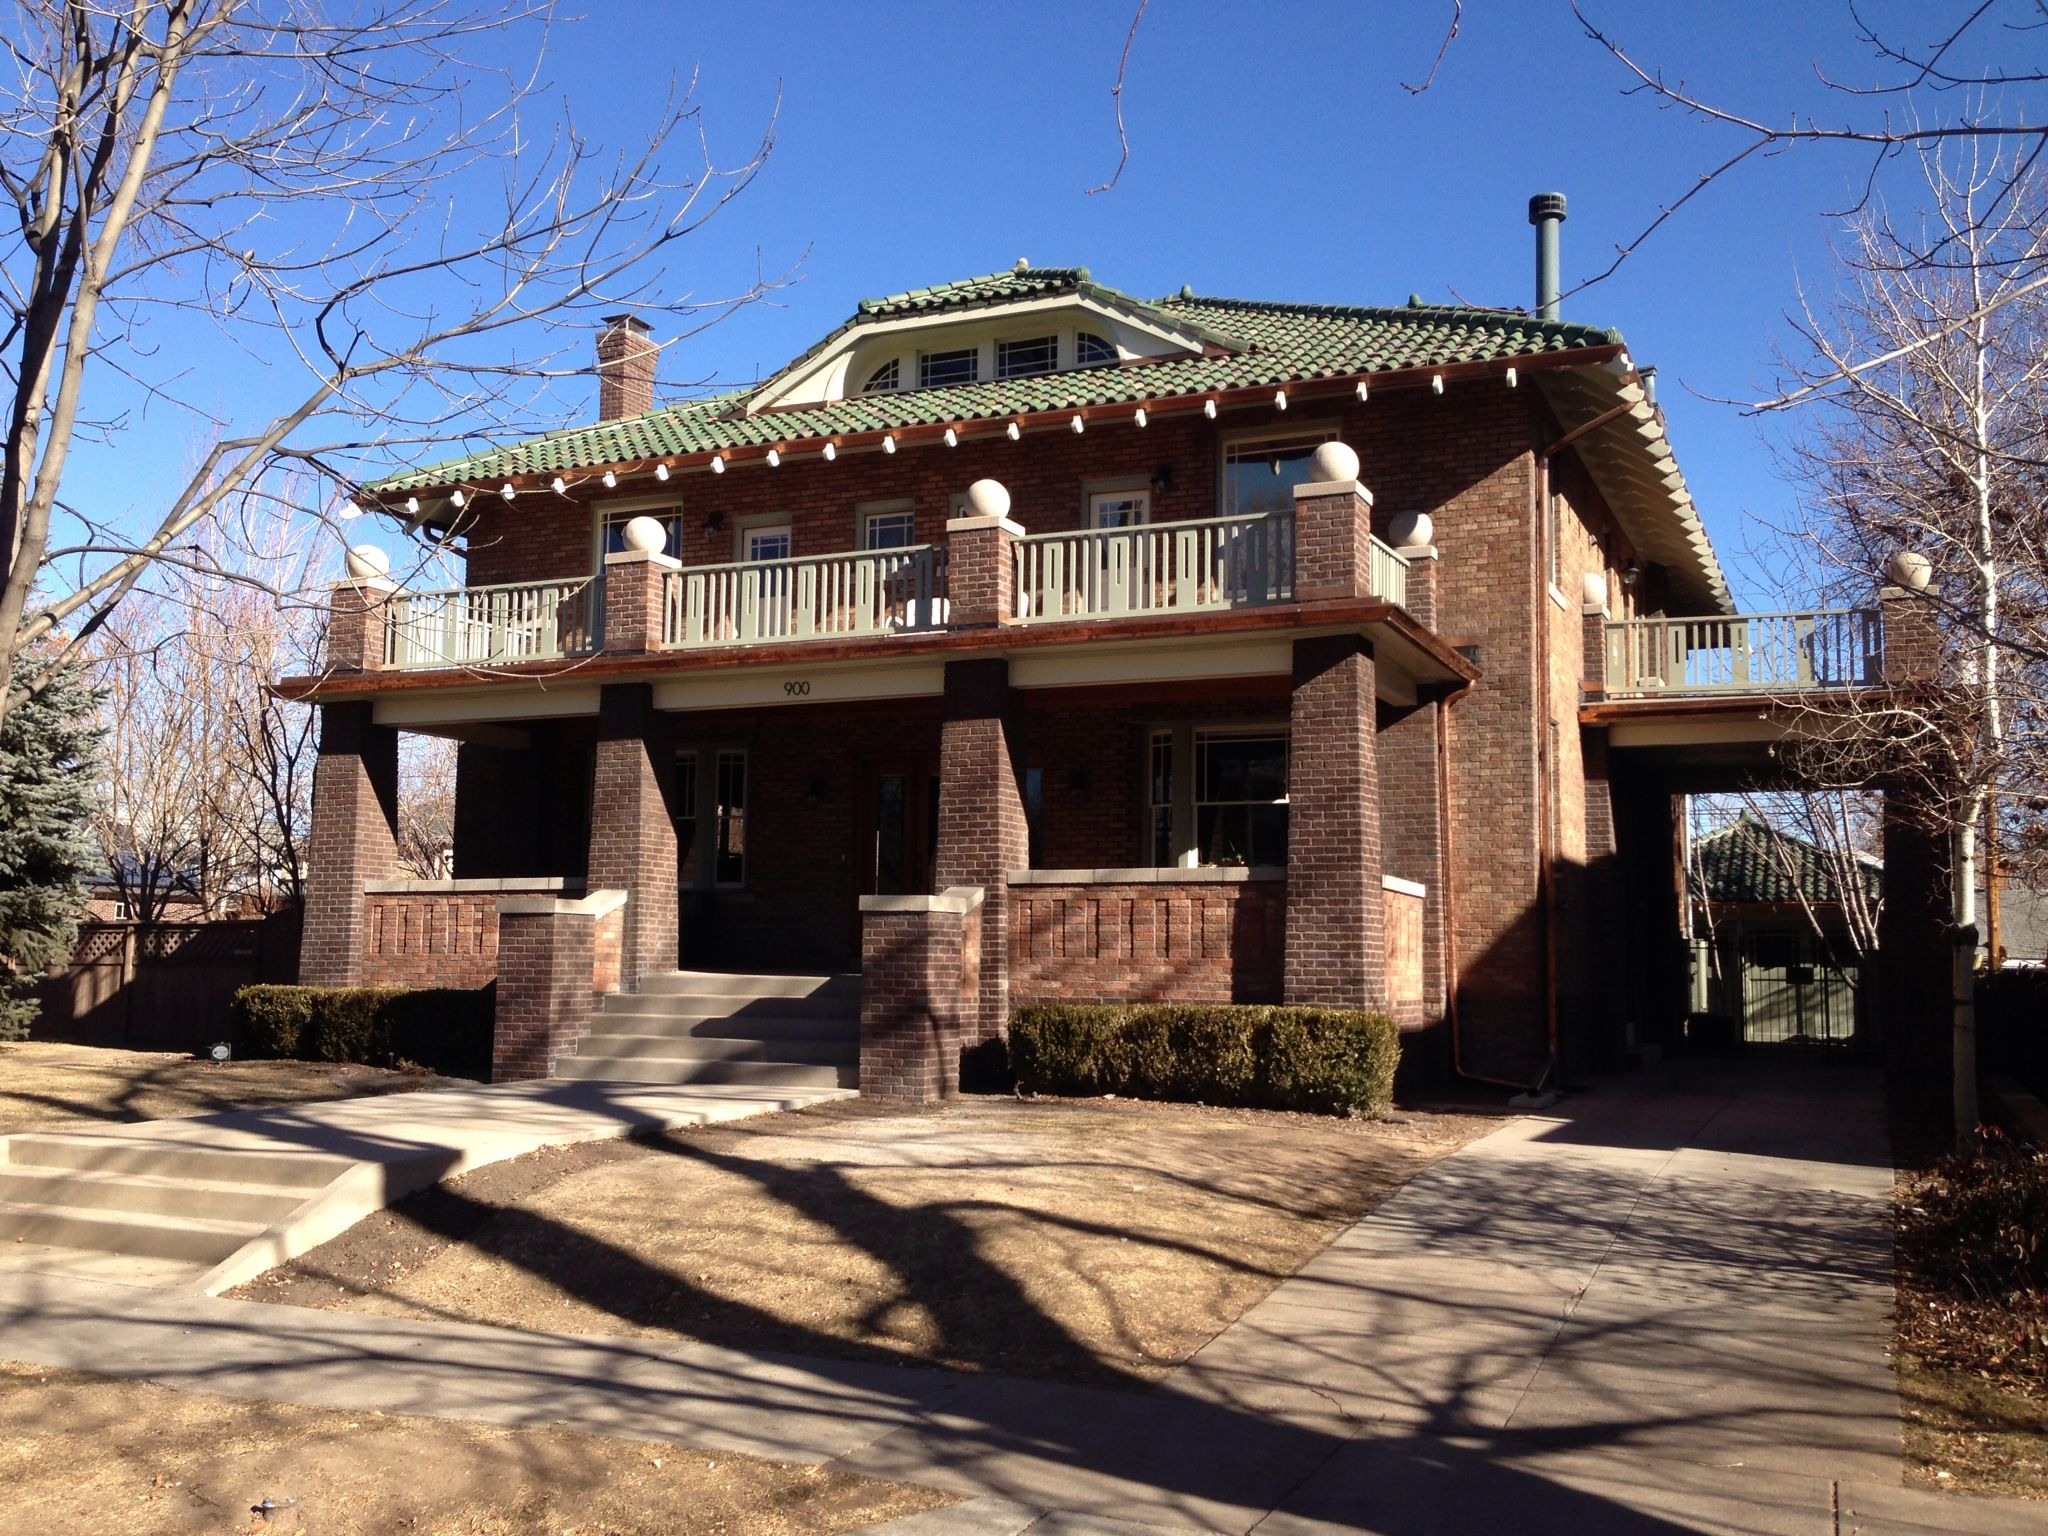 Green Heinz Spanlock Roof With Custom Copper Gutters House Styles Roofing Systems Copper Gutters